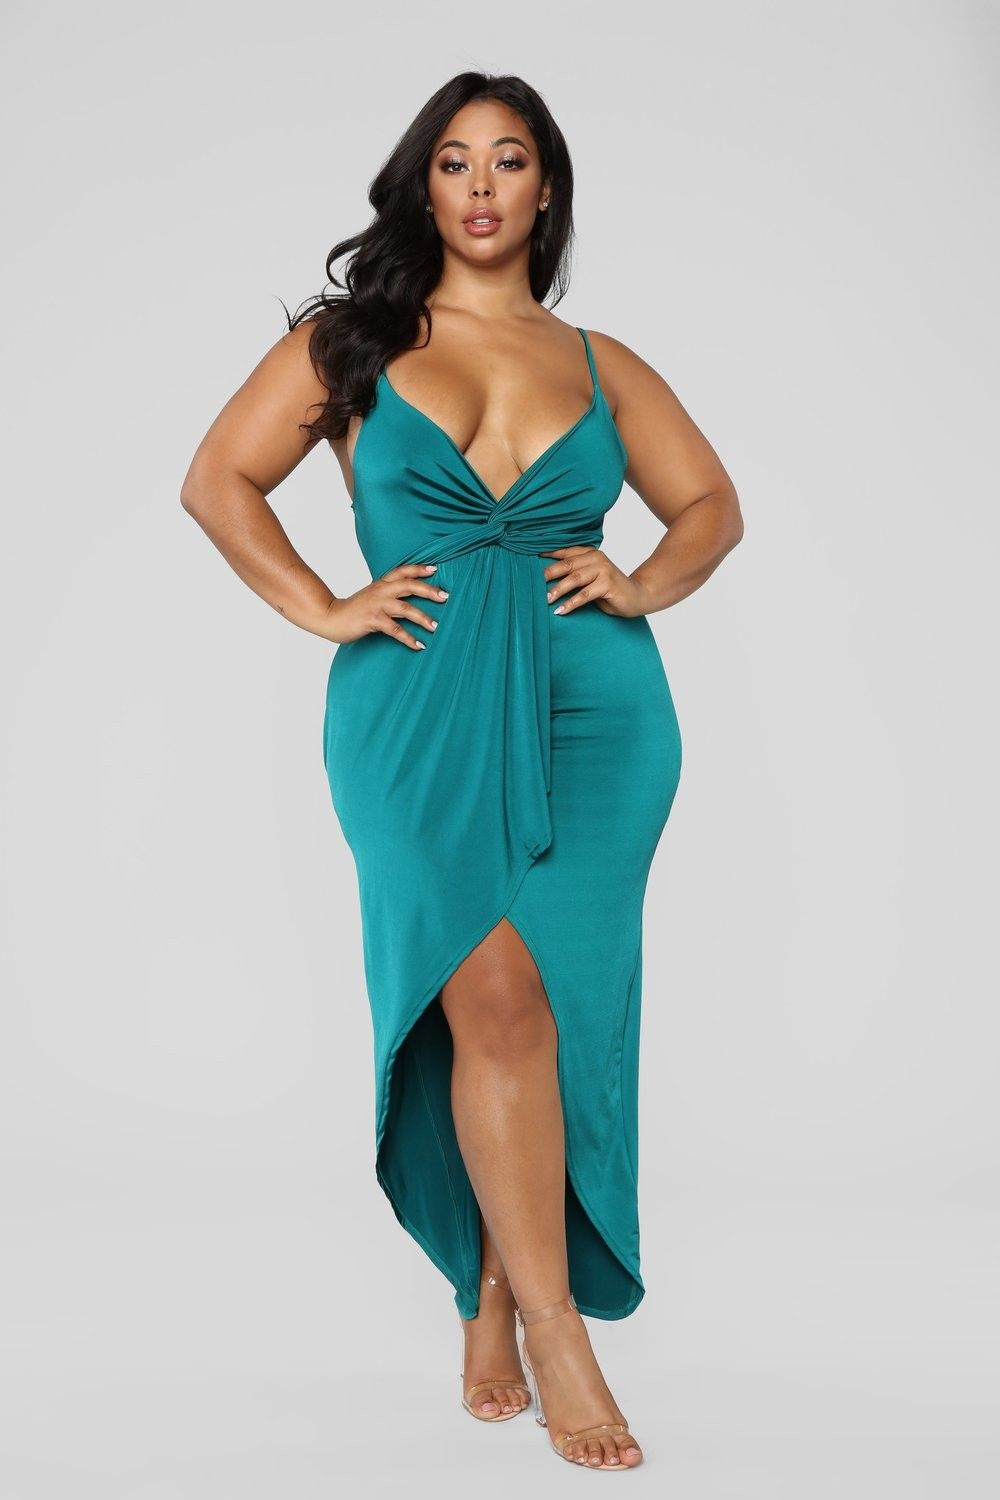 3eb505472f6 Plus Size Love Is Patient Ruffle Dress - Green $39.99 #fashion #ootd #outfit